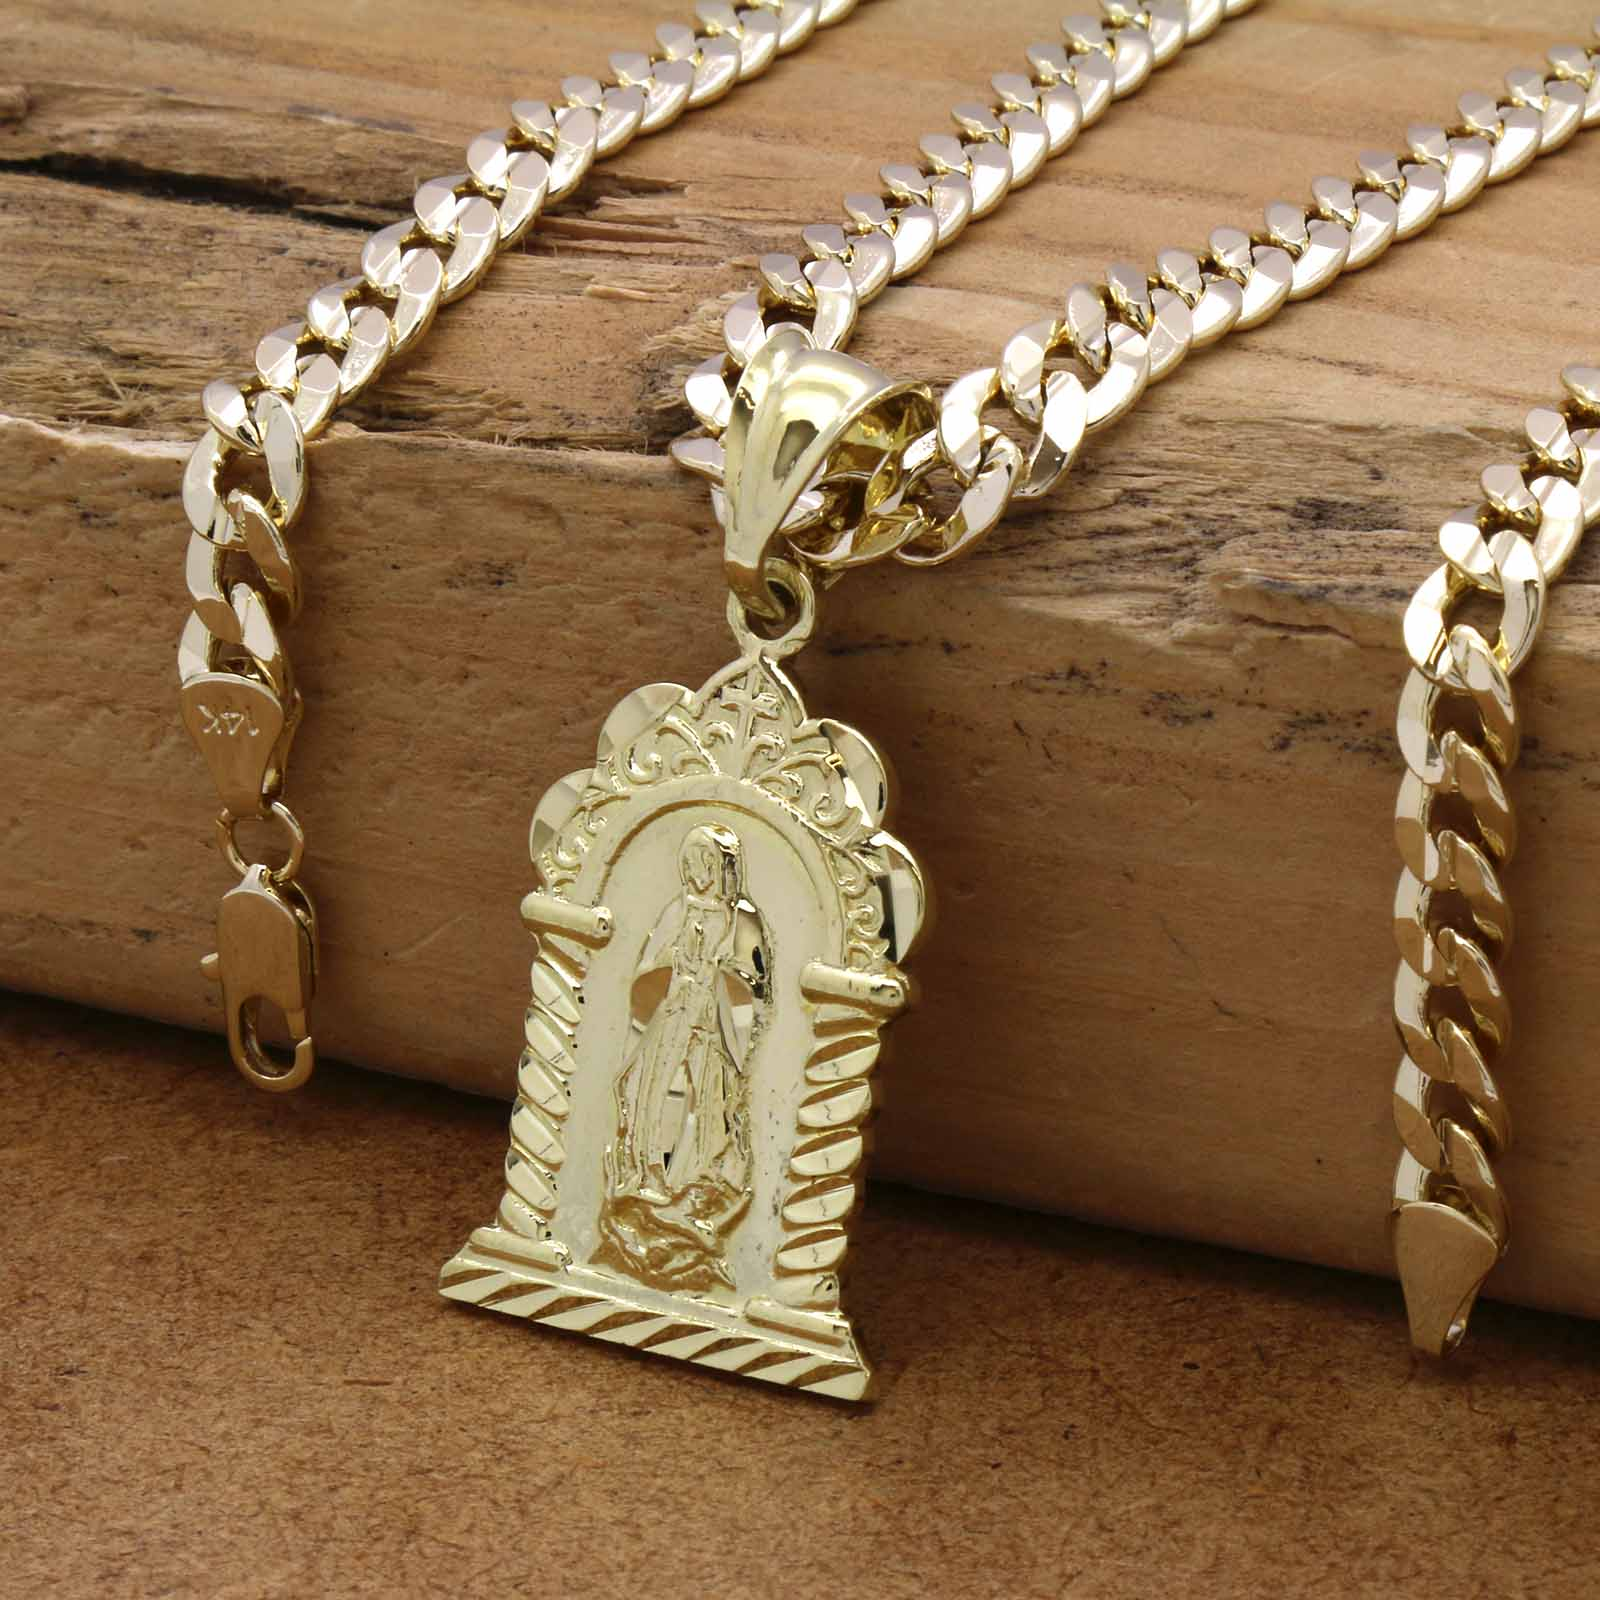 VIRGIN GUADALUPE SHRINE PENDANT